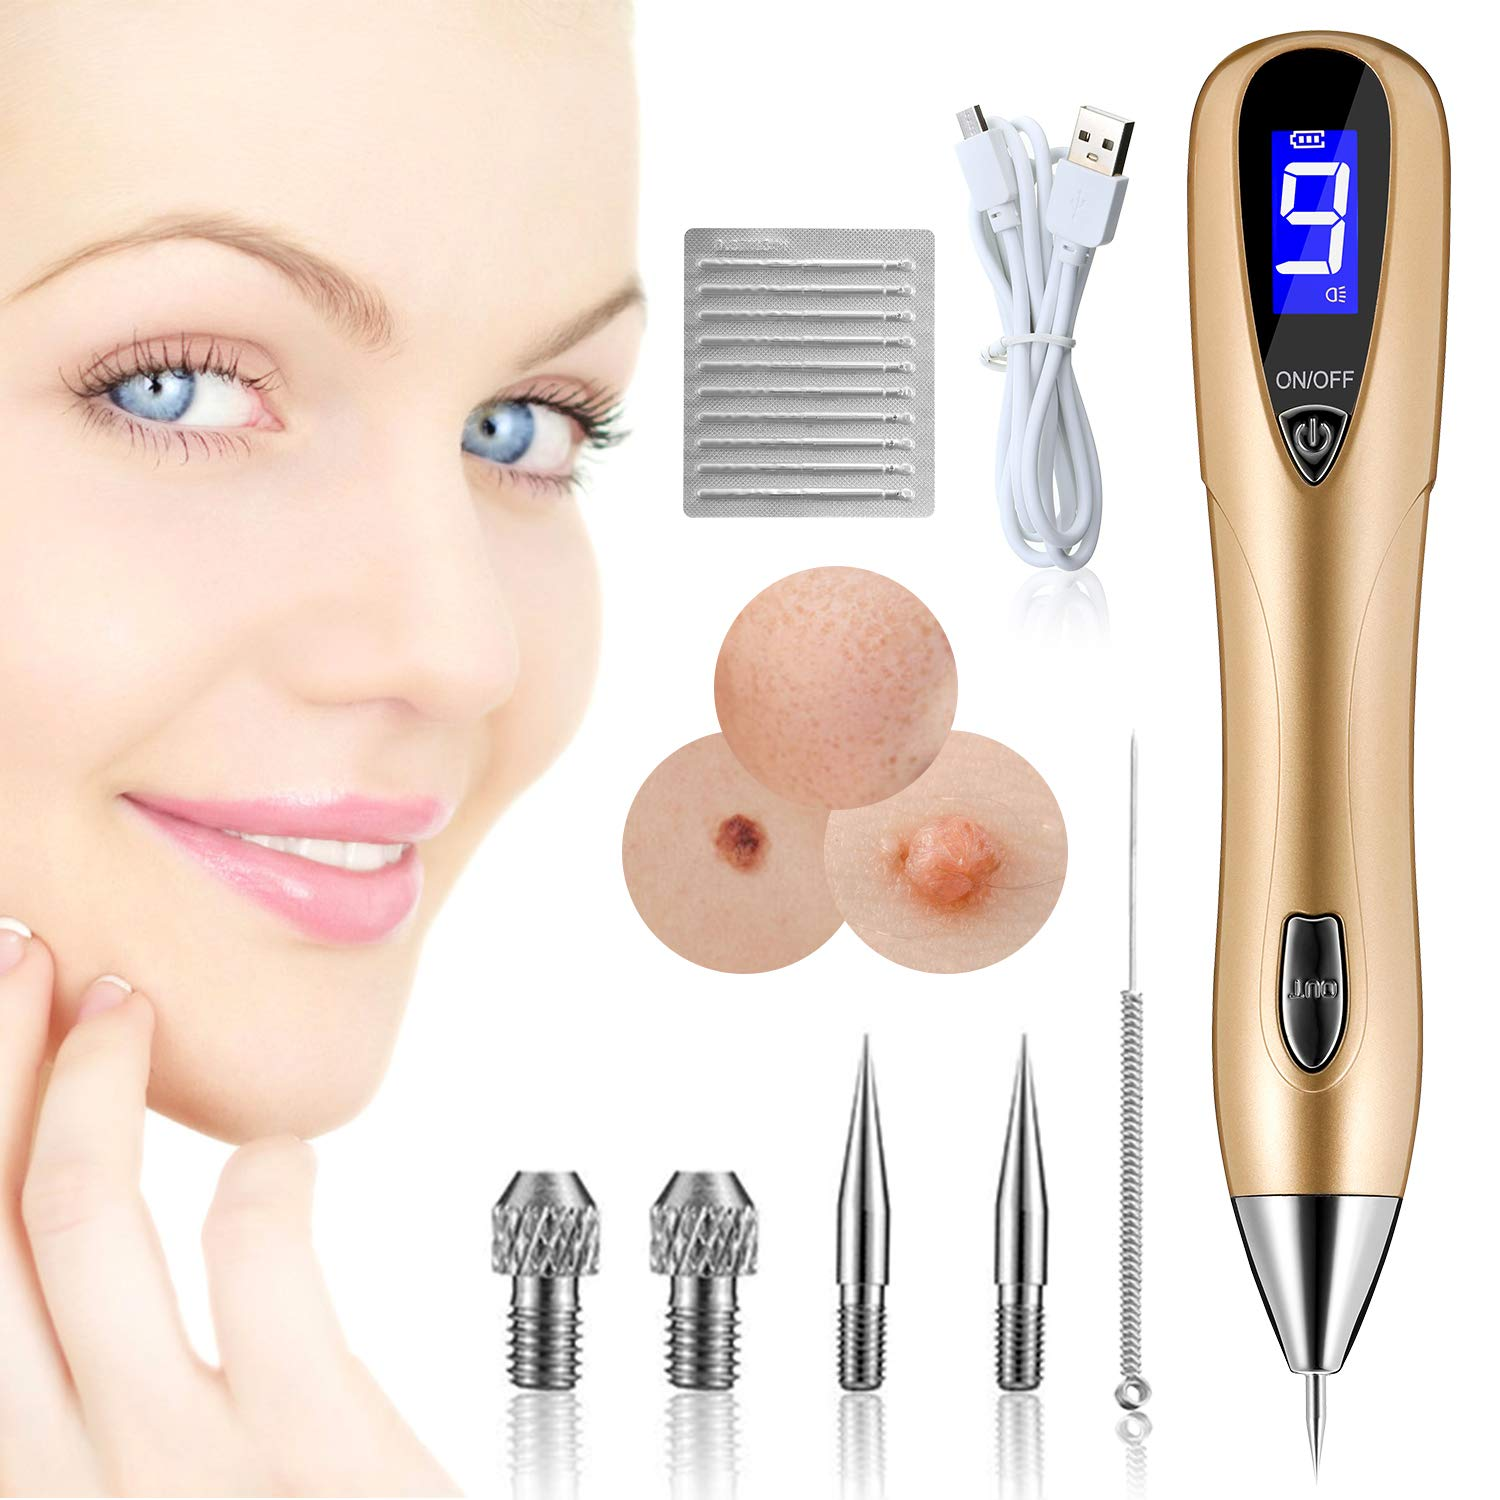 SGGI 9 Speed Adjustable Professional Freckle Tattoo Beauty Equipment Home LCD Screen USB Charging with 12 Replaceable Needles